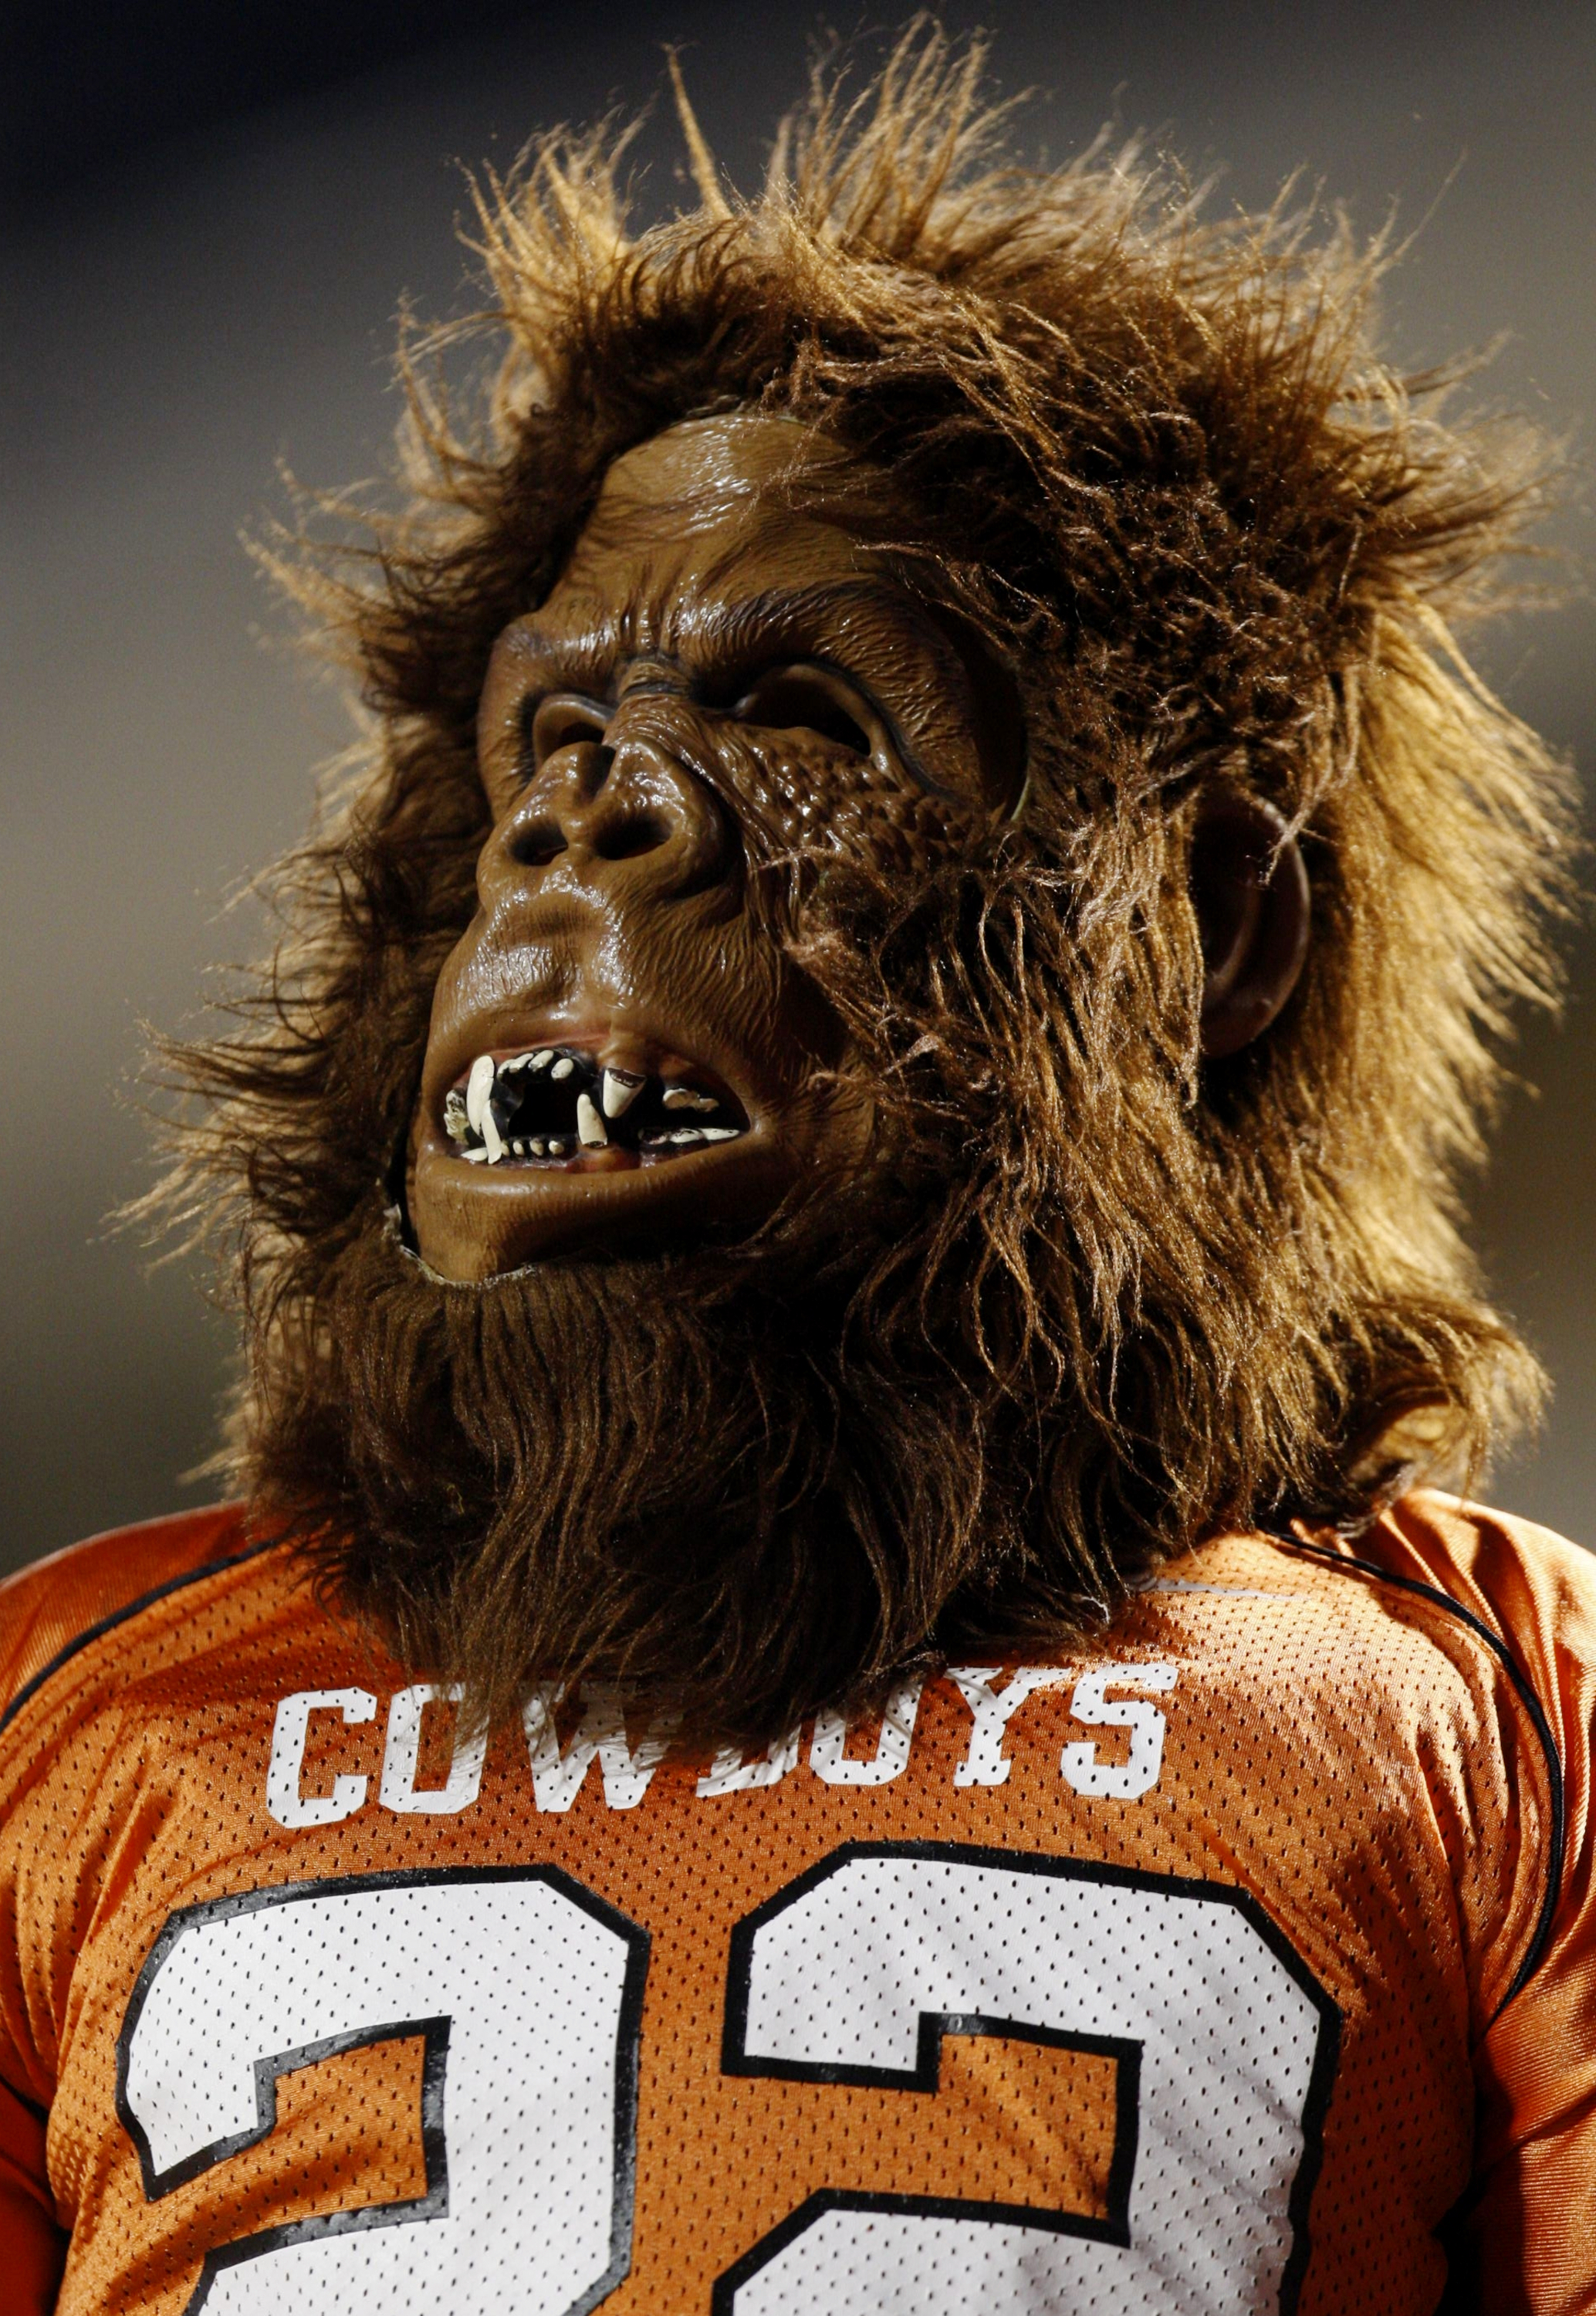 STILLWATER, OK - OCTOBER 31:  A fan of the Oklahoma State Cowboys watches the game against the Texas Longhorns at Boone Pickens Stadium on October 31, 2009 in Stillwater, Oklahoma. (Photo by Ronald Martinez/Getty Images)